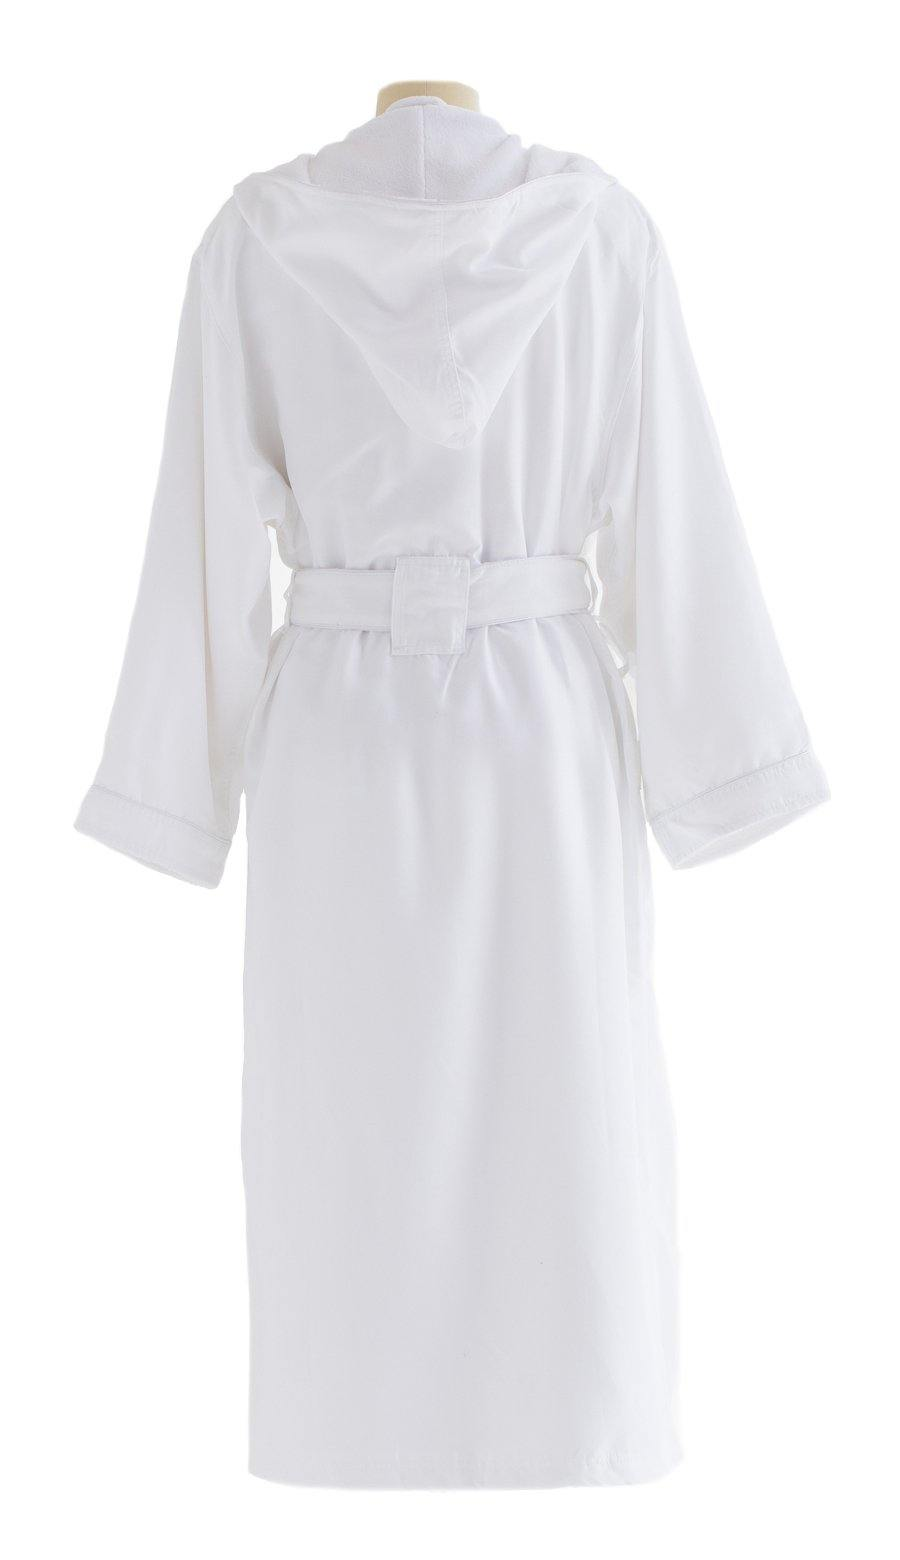 Microfiber Plush Robe With A Hood | Style: MPRH300 Back White